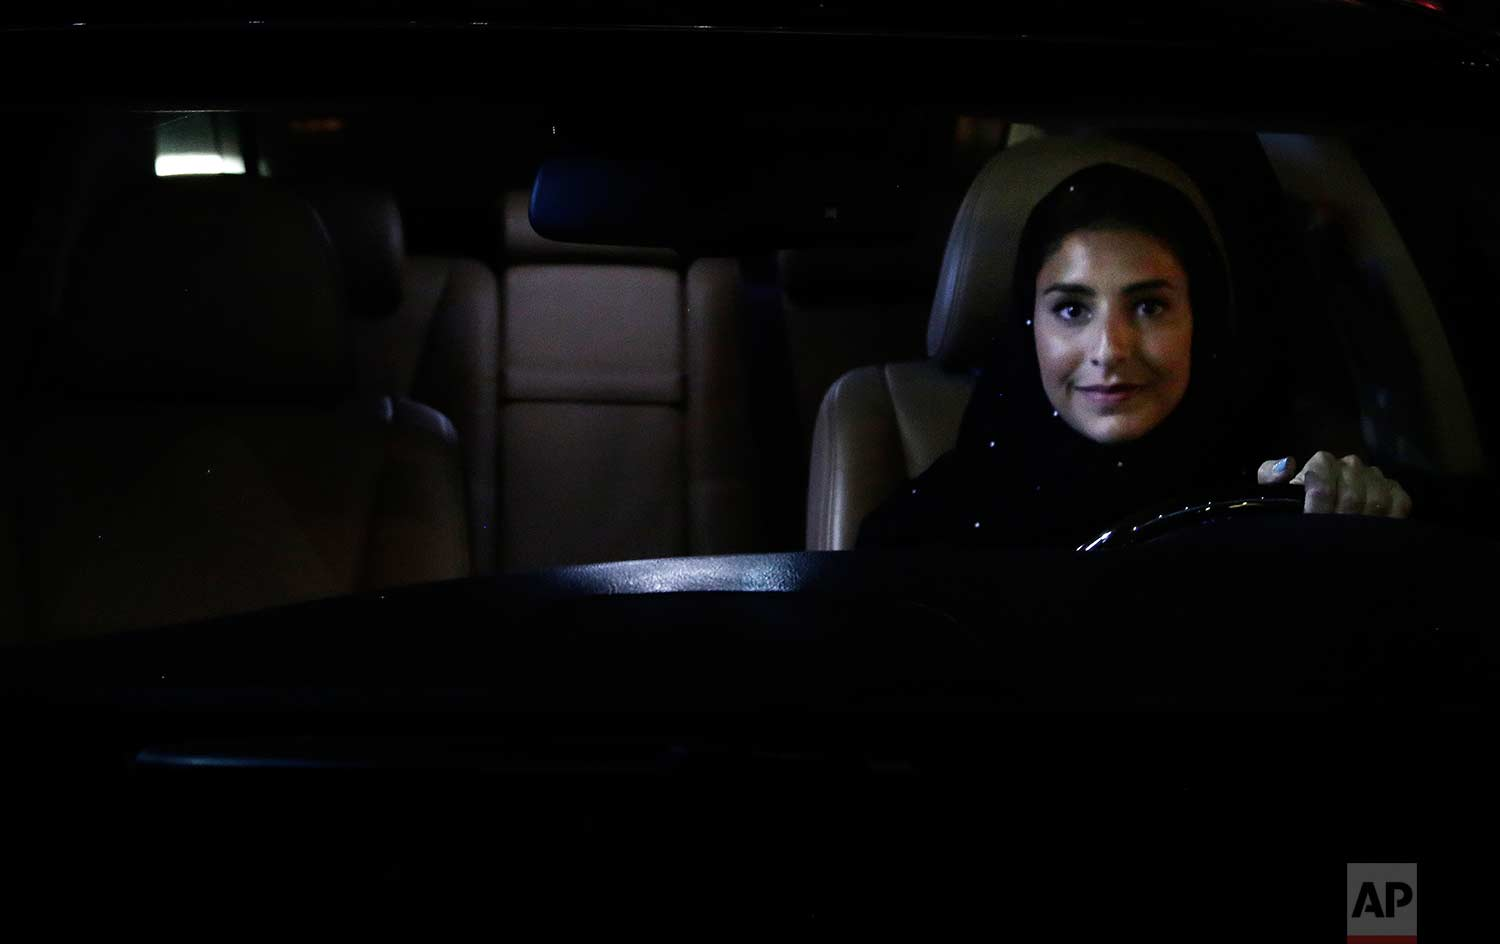 Hessah al-Ajaji sits in her car on the capital's busy Tahlia Street after driving for the first time in Riyadh, Saudi Arabia, Sunday, June 24, 2018. Saudi women are in the driver's seat for the first time in their country and steering their way through busy city streets just minutes after the world's last remaining ban on women driving was lifted on Sunday. (AP Photo/Nariman El-Mofty)